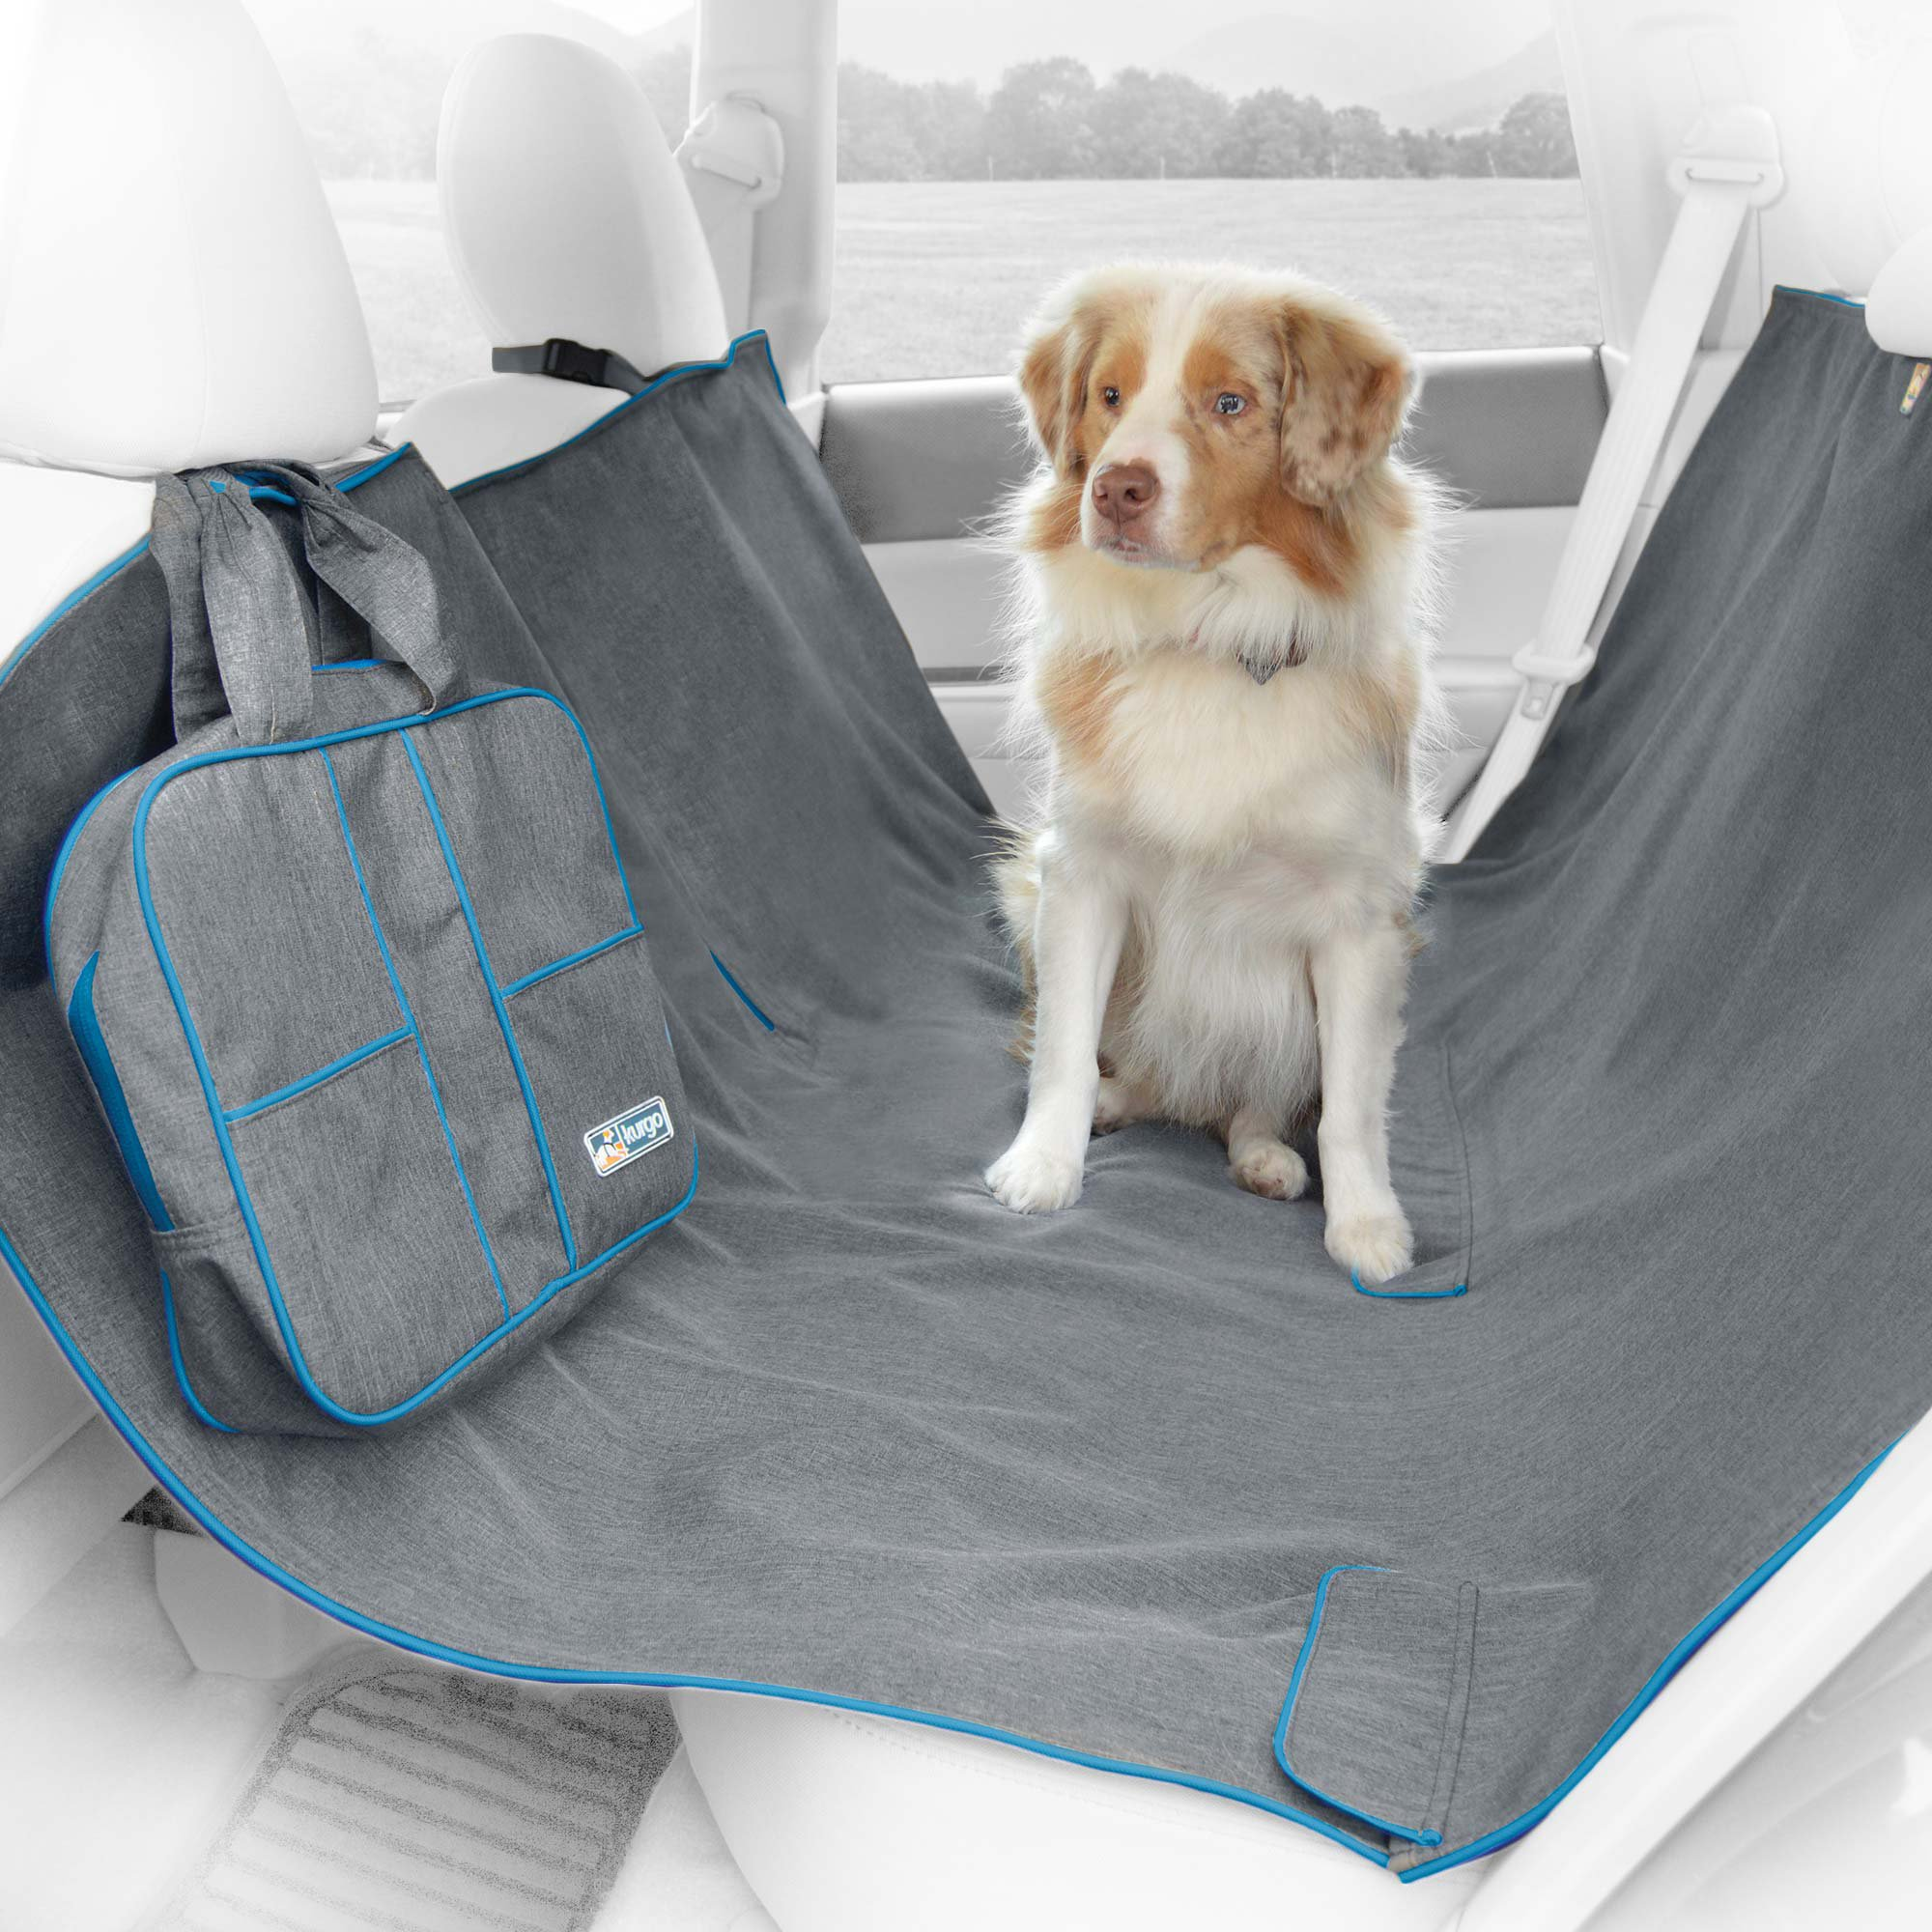 kurgo heather hammock gray dog car seat cover petco. Black Bedroom Furniture Sets. Home Design Ideas